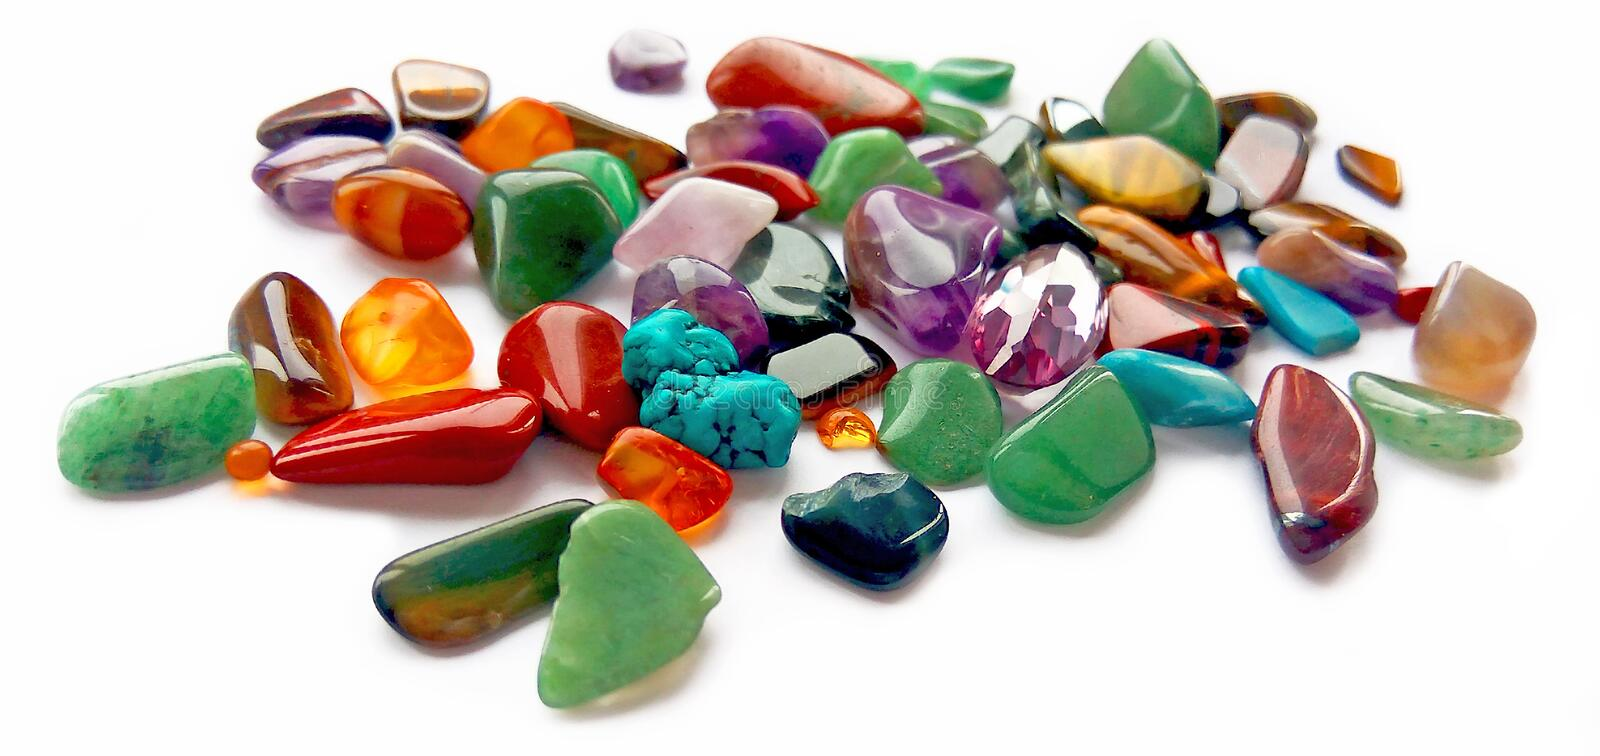 Assorted natural bright coloured semi precious gemstones and gems on white background stock images